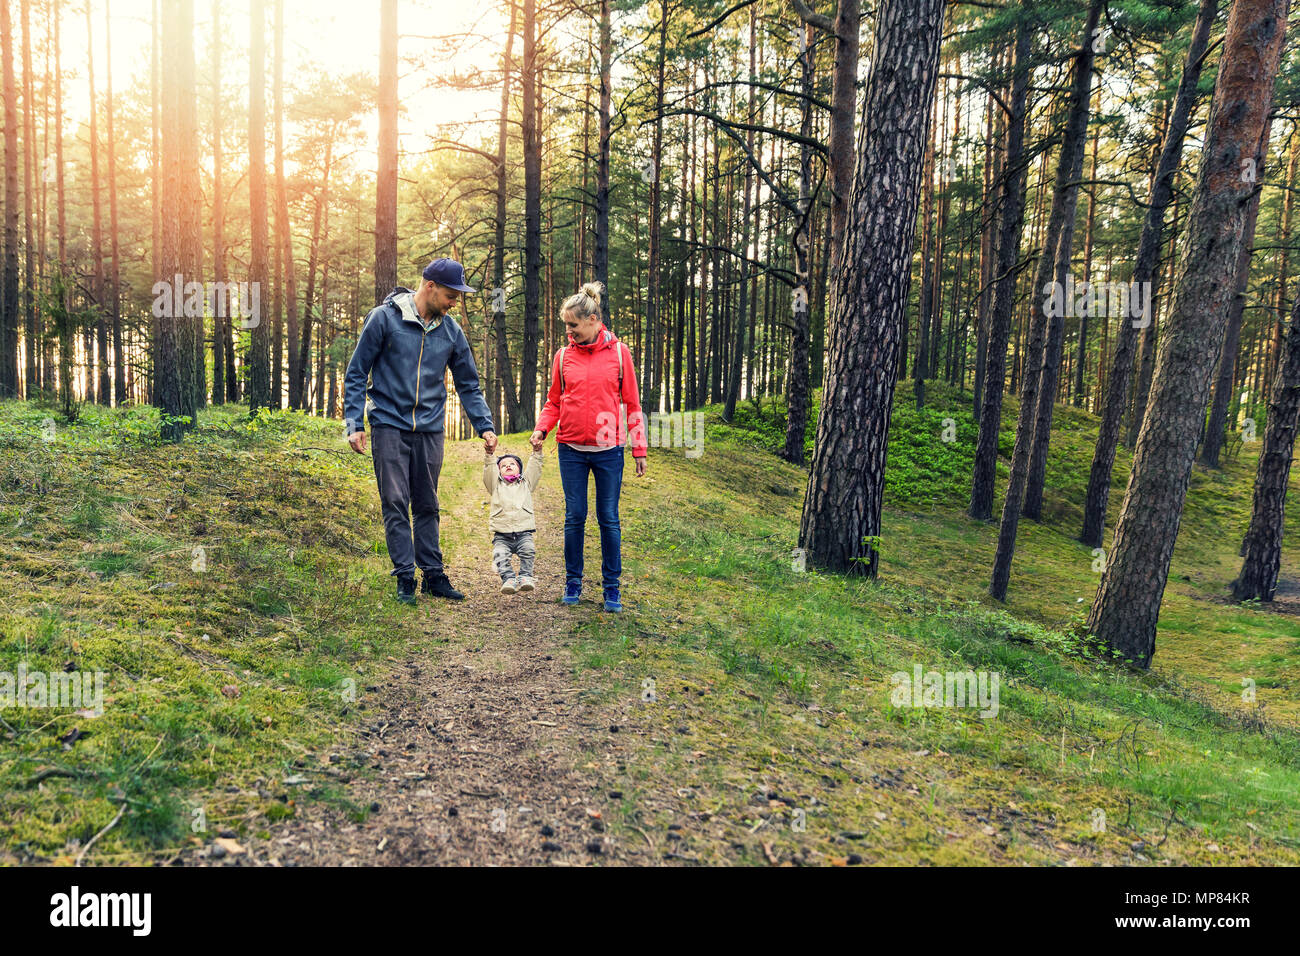 family walk in the forest - Stock Image